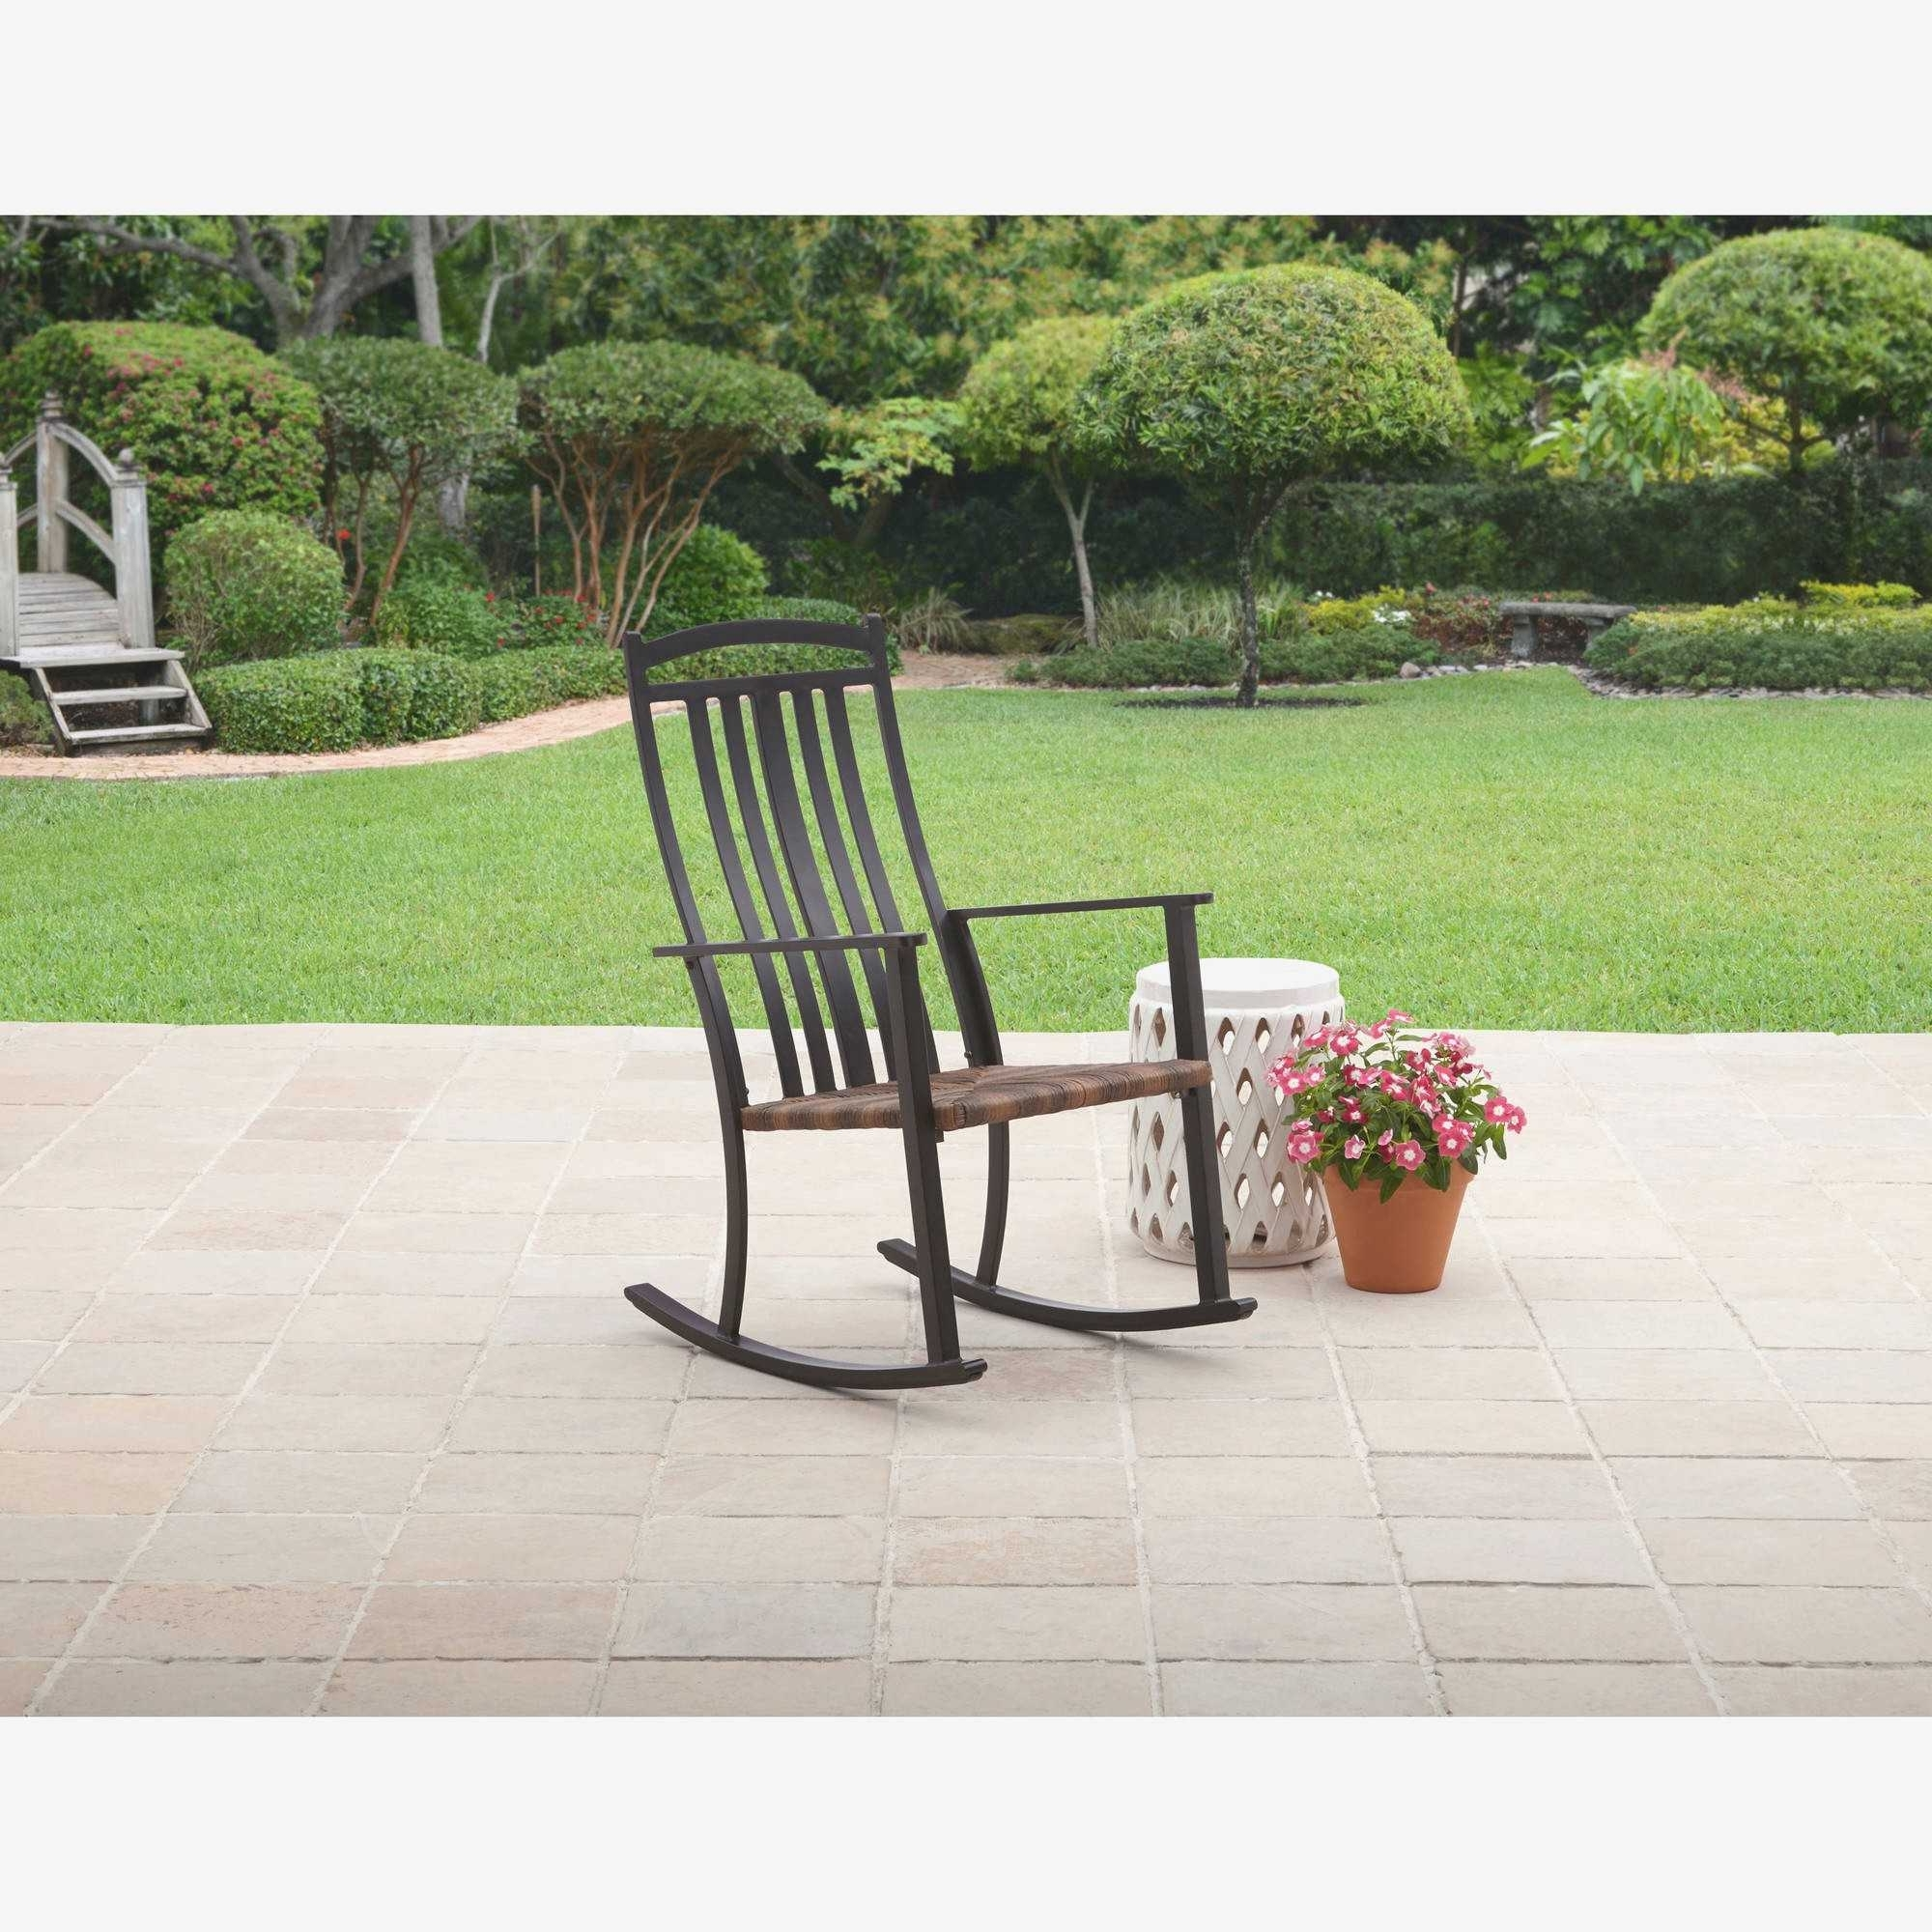 Most Up To Date Kroger Patio Furniture Unique Tips For Making Your Own Outdoor With Rocking Chairs At Kroger (View 8 of 15)